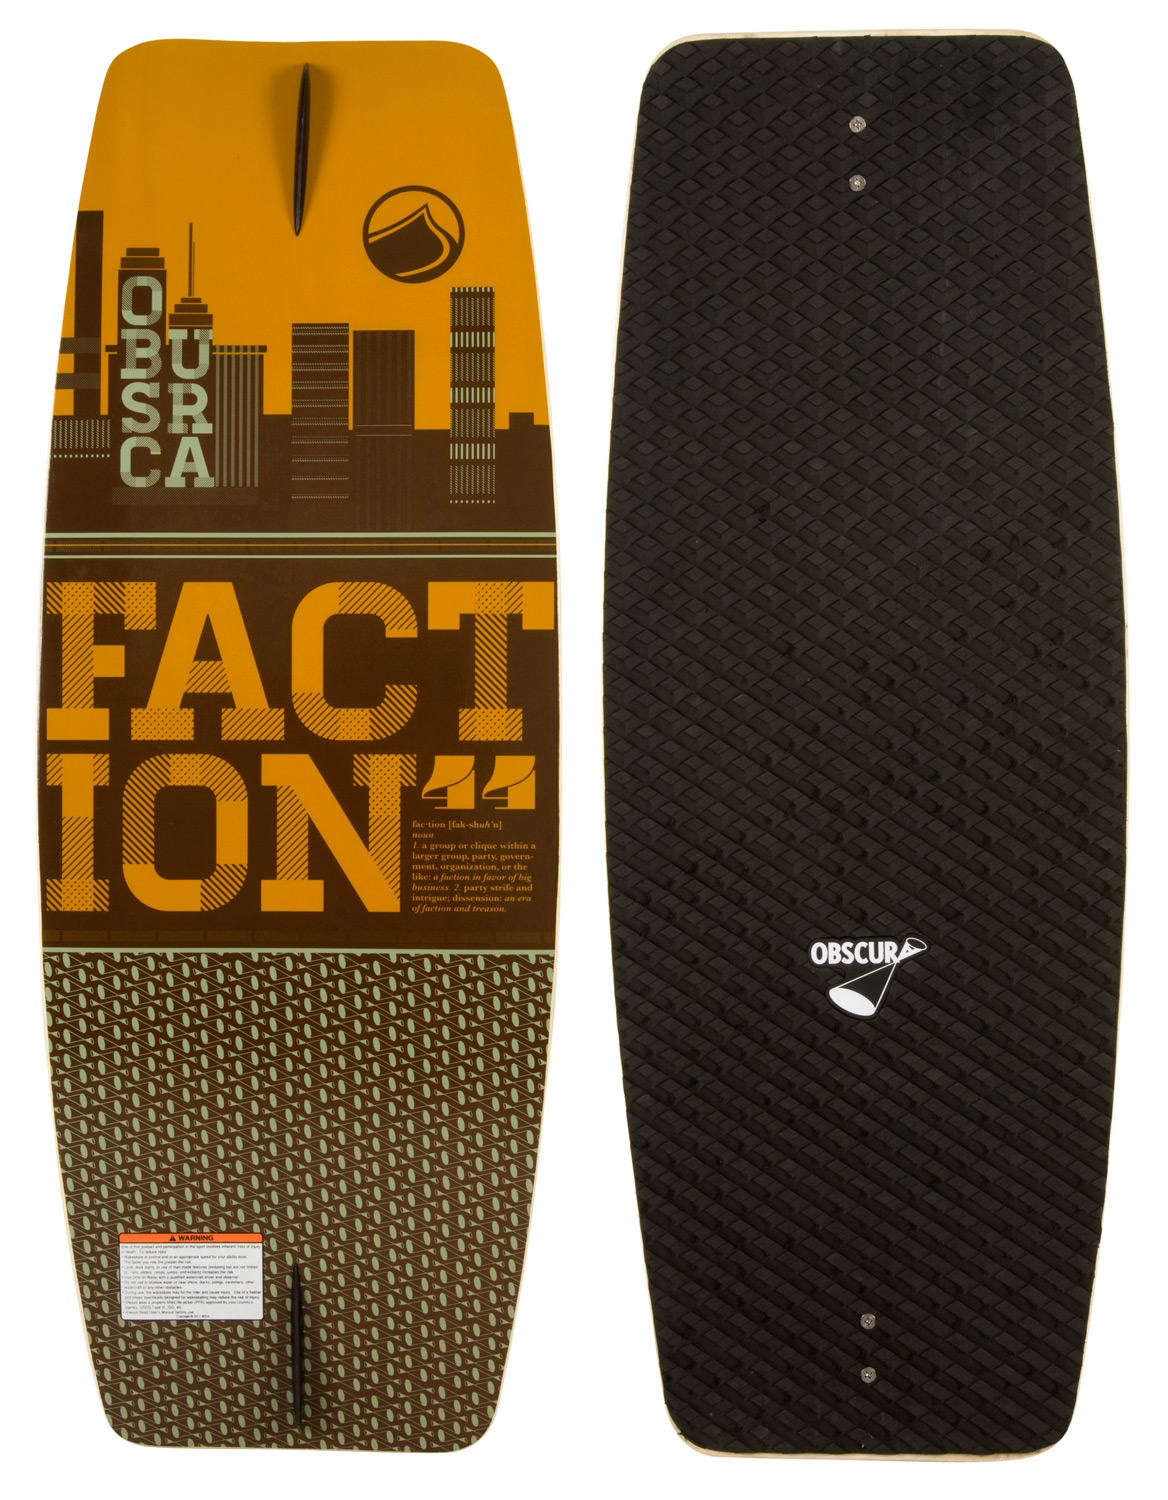 Skateboard The Faction is the perfect wake skate to learn and progress on. This value price skate features a super forgiving outline with a foam top traction pad to help you learn the basics and guide you along. If you are new to wake skating or just looking to get your first deck, there is no better board to start your skate journey on than the Faction!Key Features of the Liquid Force Faction Wakeskate: New Board Outline: For 2013 we updated the outline of the board, to have more midsection and continuous outline shape, for a better edge hold and more consistent feel under your feet. New EVA Deck: Deck comes with applied die cut machined EVA grip that has been redesigned for this year. The grip offers much improved traction and Obscura logo branding Progressive 3 Stage Rocker: A mixture of aggressive 3 stage and continuous rocker, this rocker profile allows the board to stay under your feet as you edge or leave the wake. Single concave: The progressive 3 stage rocker is complimented with a single concave throughout the board that helps the board track even truer, with a fin or without, when you are on edge. Wood Construction: Decks that are pressed one at a time and individually CNC cut to a shape that will allow any rider, at any level to ride. Once the board is machined it goes thru a varnishing process twice to ensure a quality seal. Constant Rail Edge: The rail of the board is soft throughout. This allows the board to have a forgiving feel. Skate Fin: Comes standard with two 1.0 skate fins. - $99.99